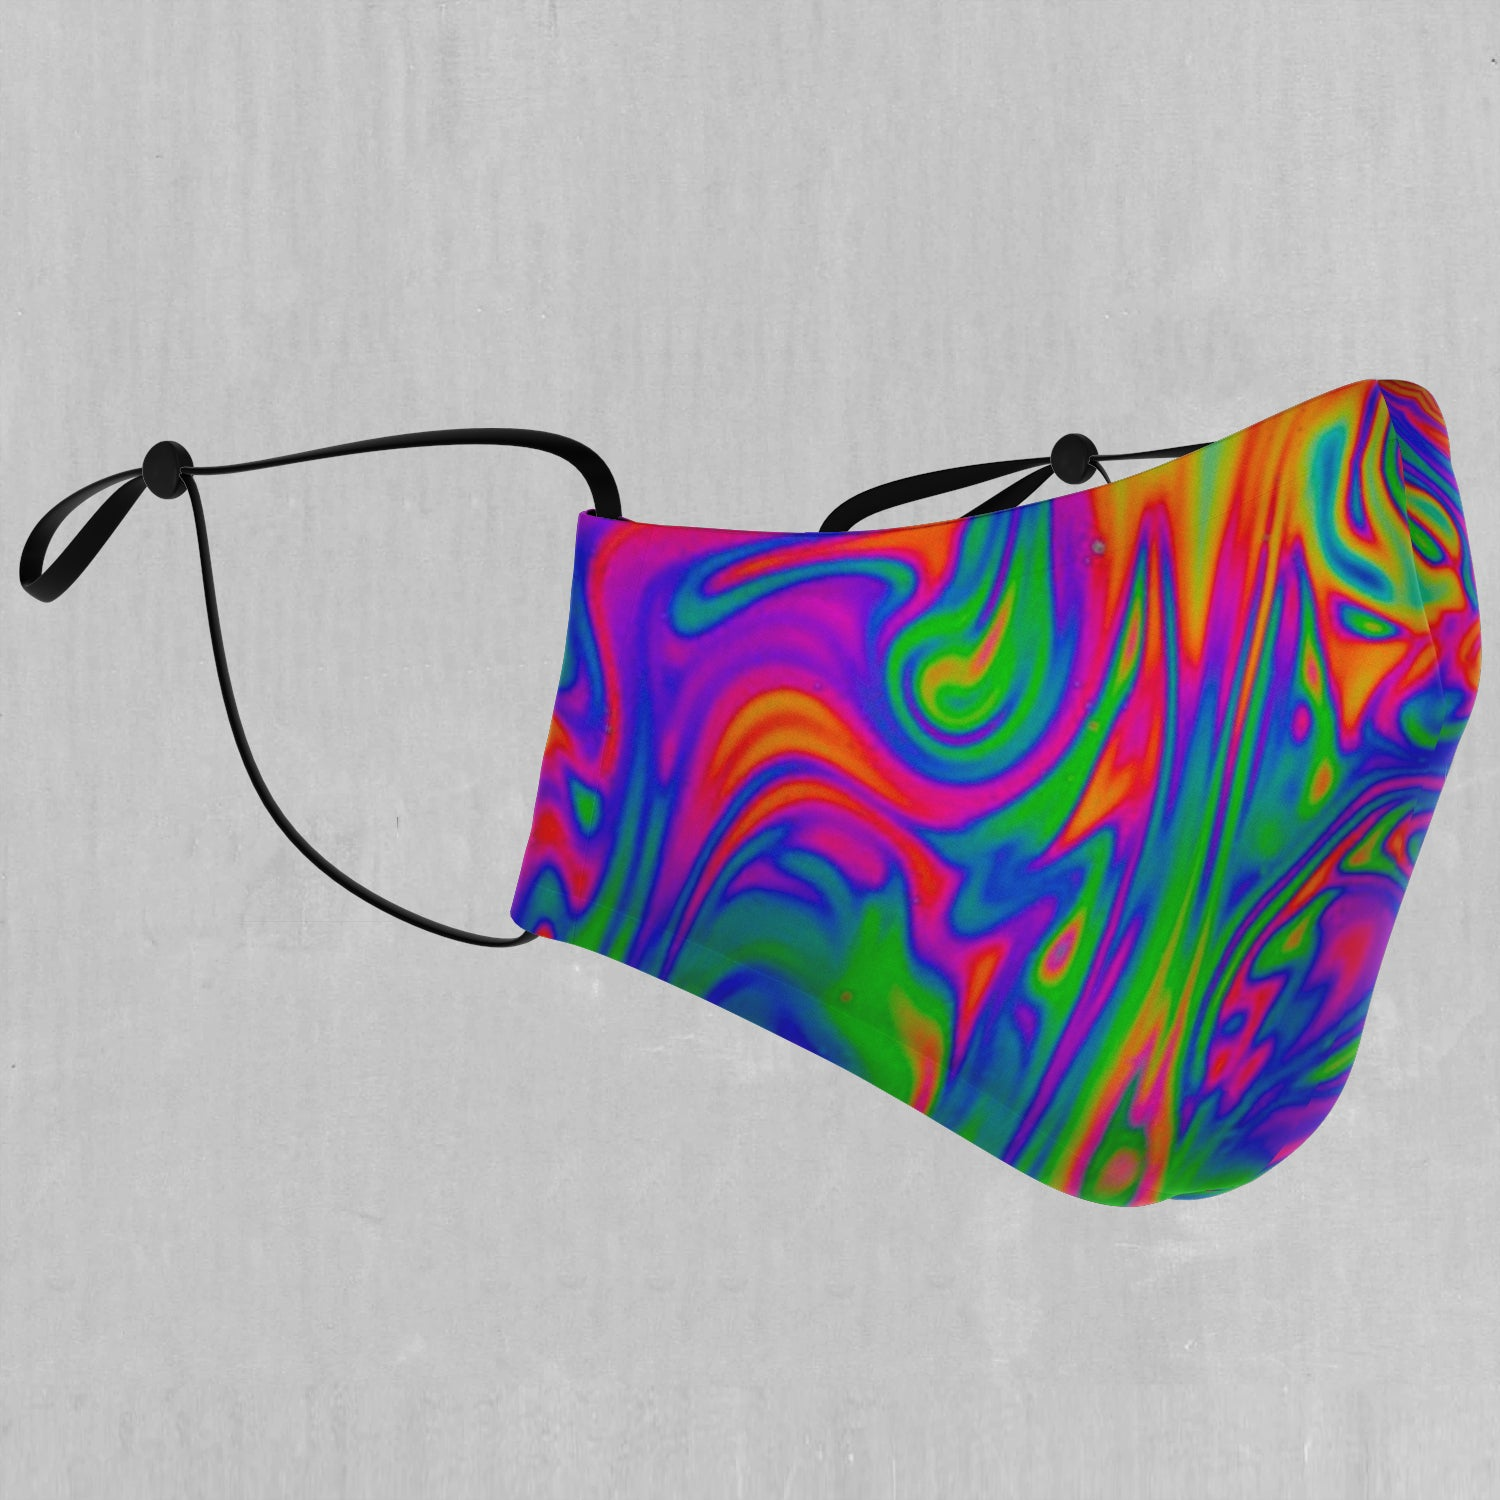 Acid Pool Face Mask - EDM Rave Festival Street Wear Abstract Apparel